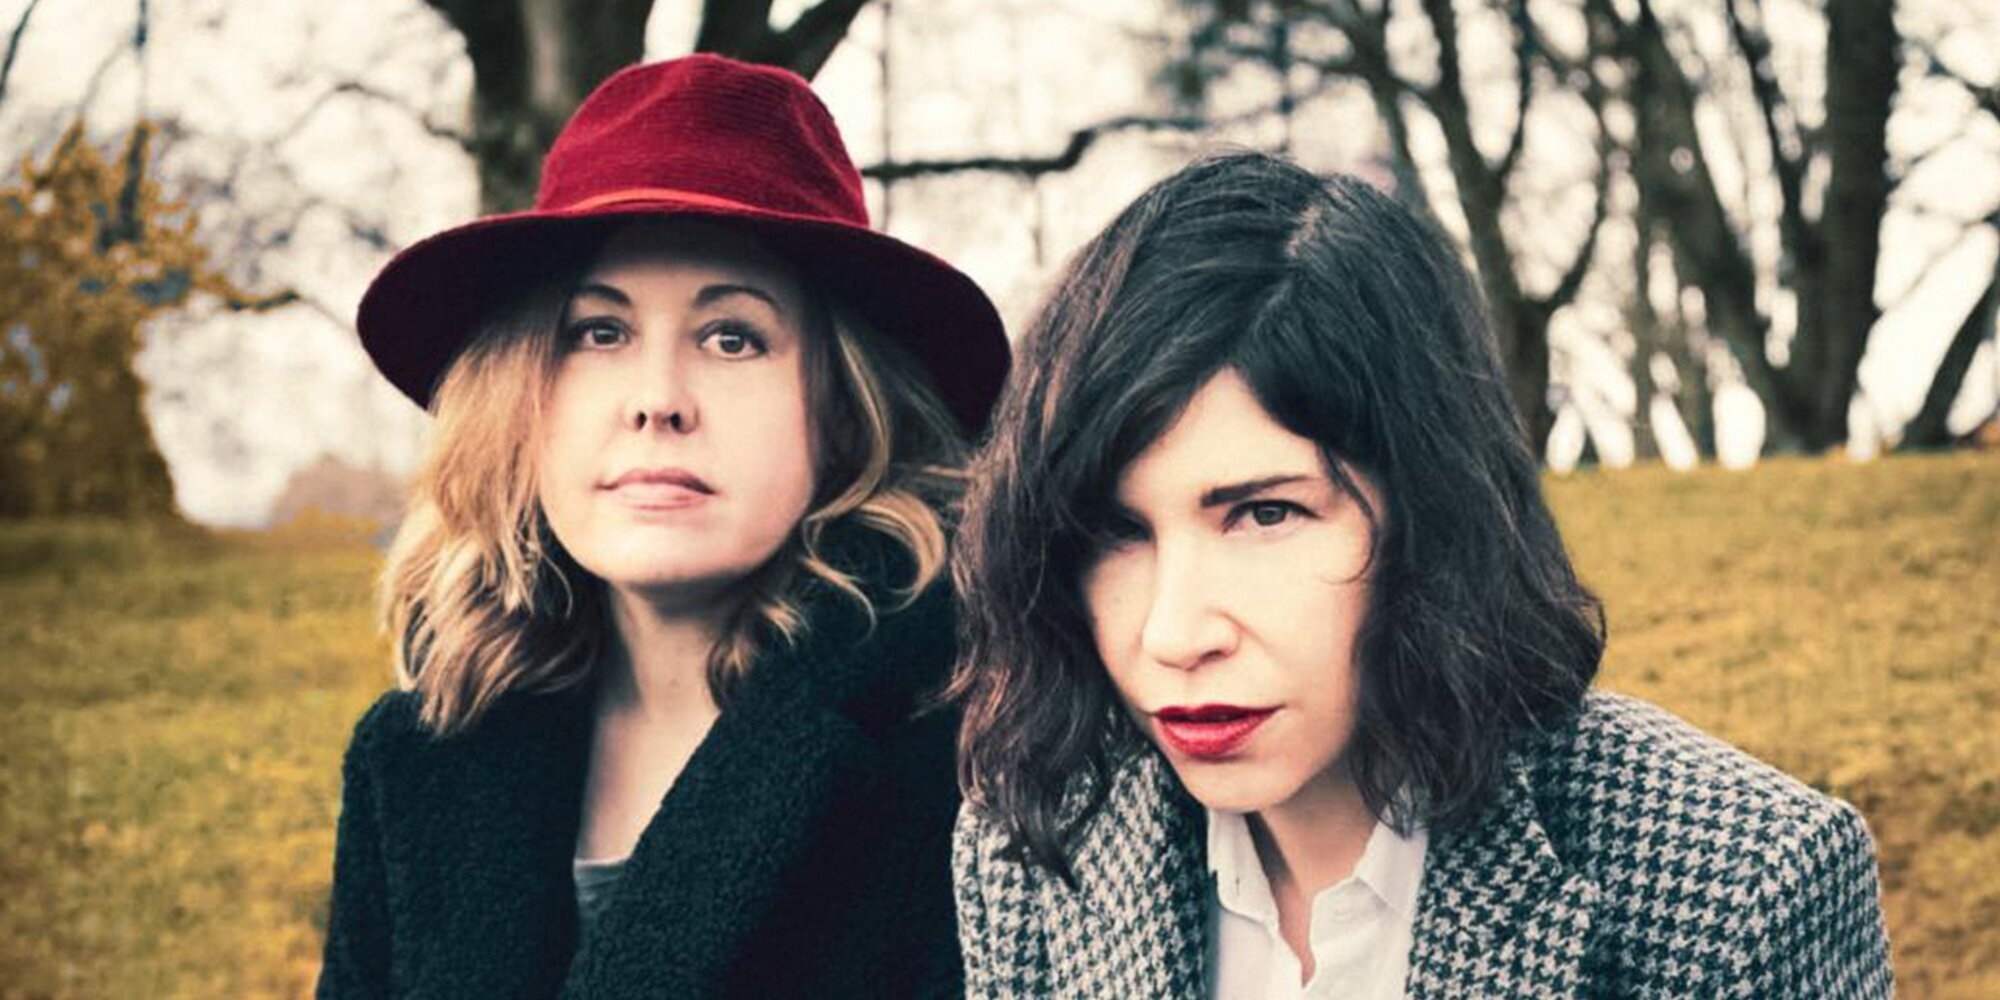 'Path of Wellness' review: Sleater-Kinney finds the center again